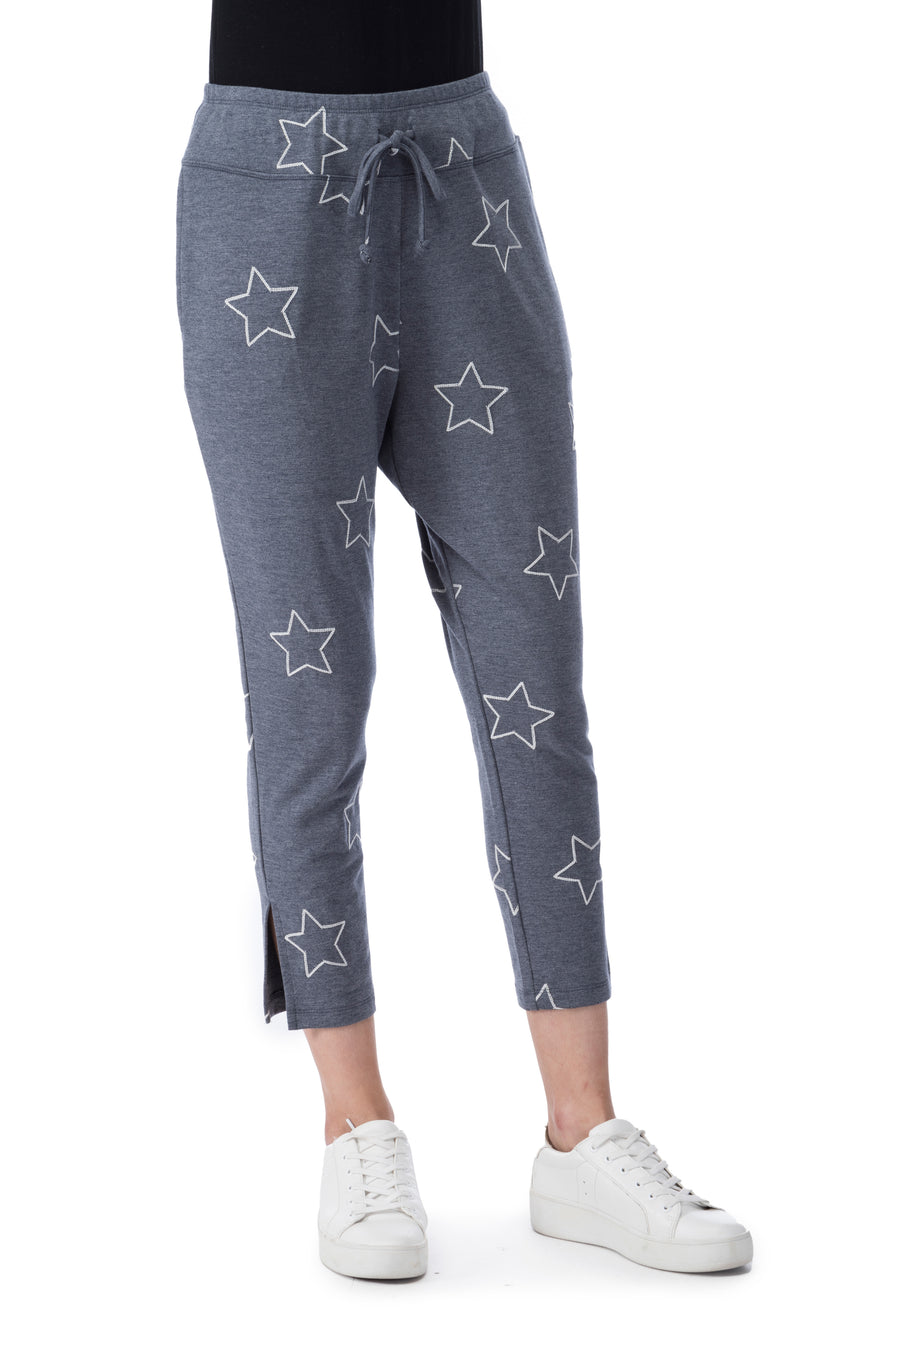 Pascale Star French Terry Crop Pant